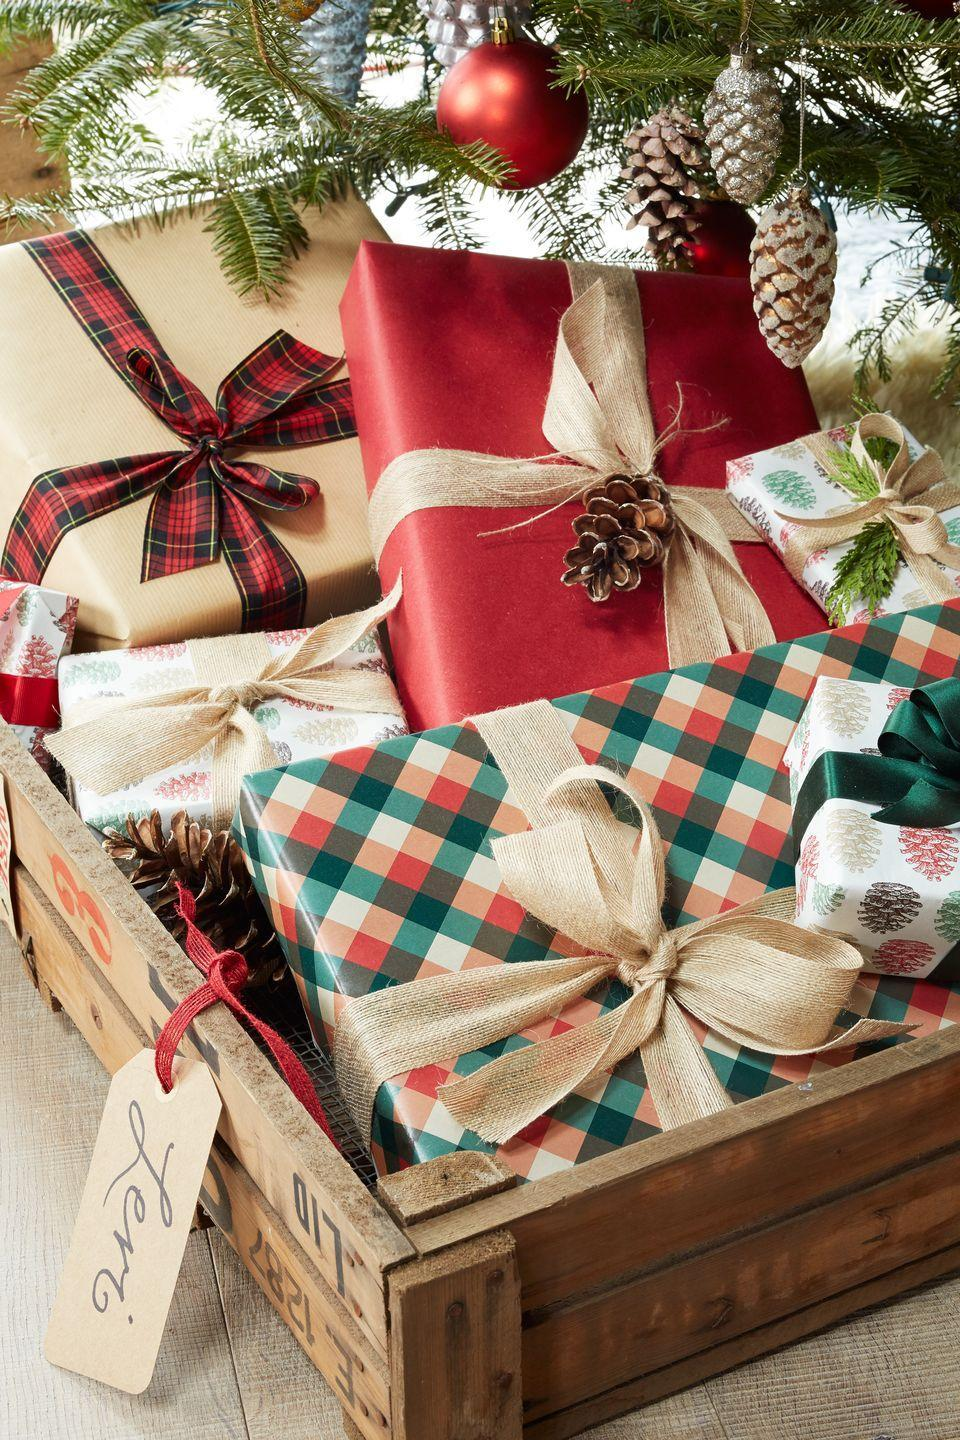 """<p>Swap out stockings for vintage crates! Give each guest a special delivery on Christmas morning by corralling gifts in tagged shipping crates under the tree.</p><p><a class=""""link rapid-noclick-resp"""" href=""""https://go.redirectingat.com?id=74968X1596630&url=https%3A%2F%2Fwww.etsy.com%2Fmarket%2Fwooden_crates&sref=https%3A%2F%2Fwww.countryliving.com%2Fhome-design%2Fdecorating-ideas%2Fadvice%2Fg1247%2Fholiday-decorating-1208%2F"""" rel=""""nofollow noopener"""" target=""""_blank"""" data-ylk=""""slk:SHOP WOODEN CRATES"""">SHOP WOODEN CRATES</a><br></p>"""